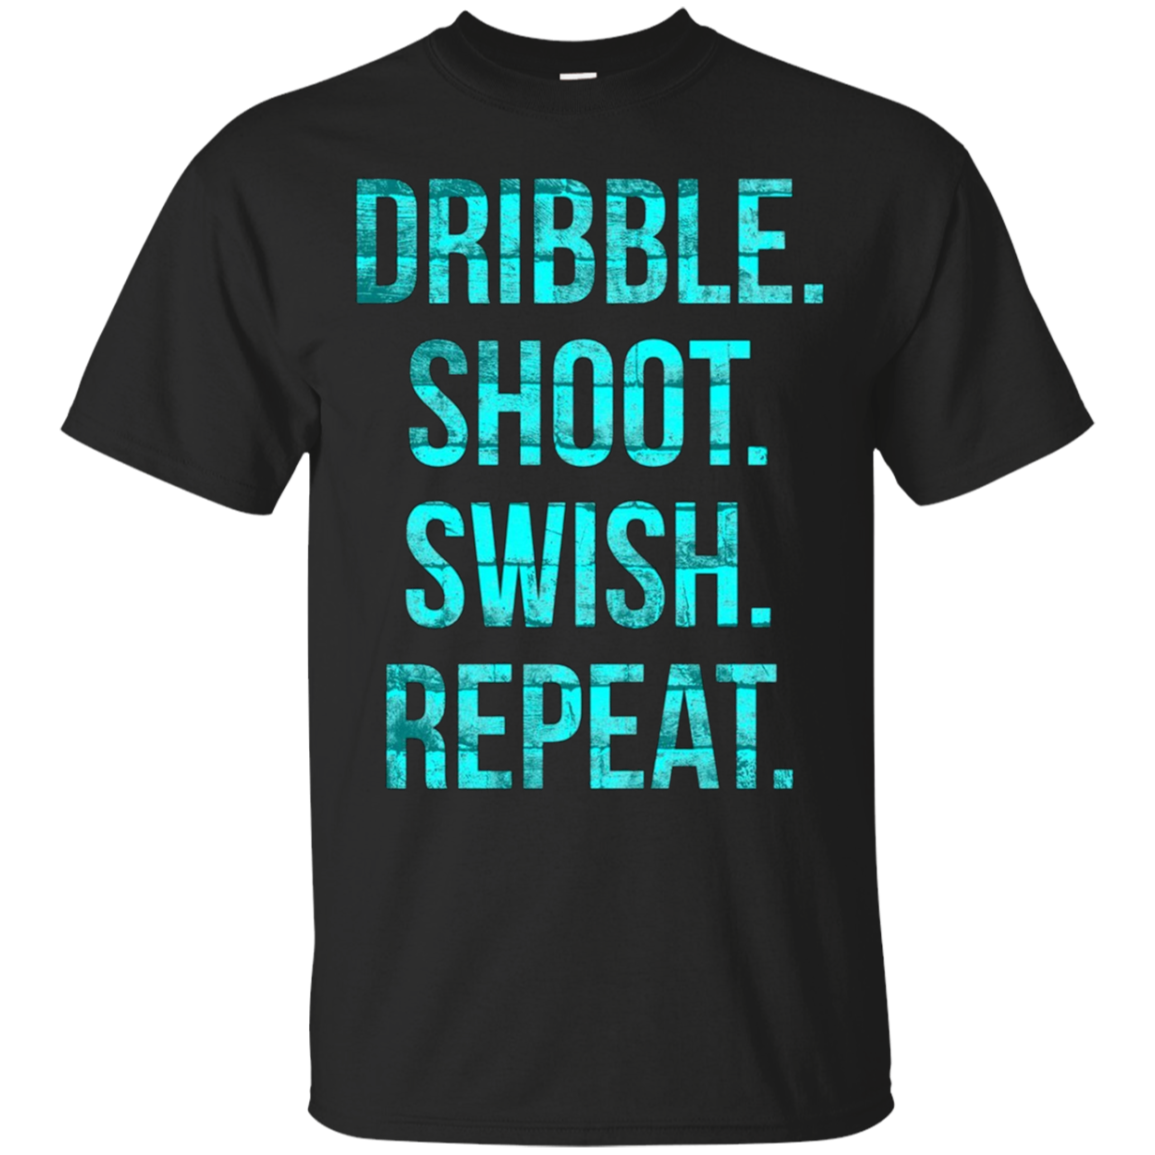 Basketball t-shirt Dribble shoot swish repeat